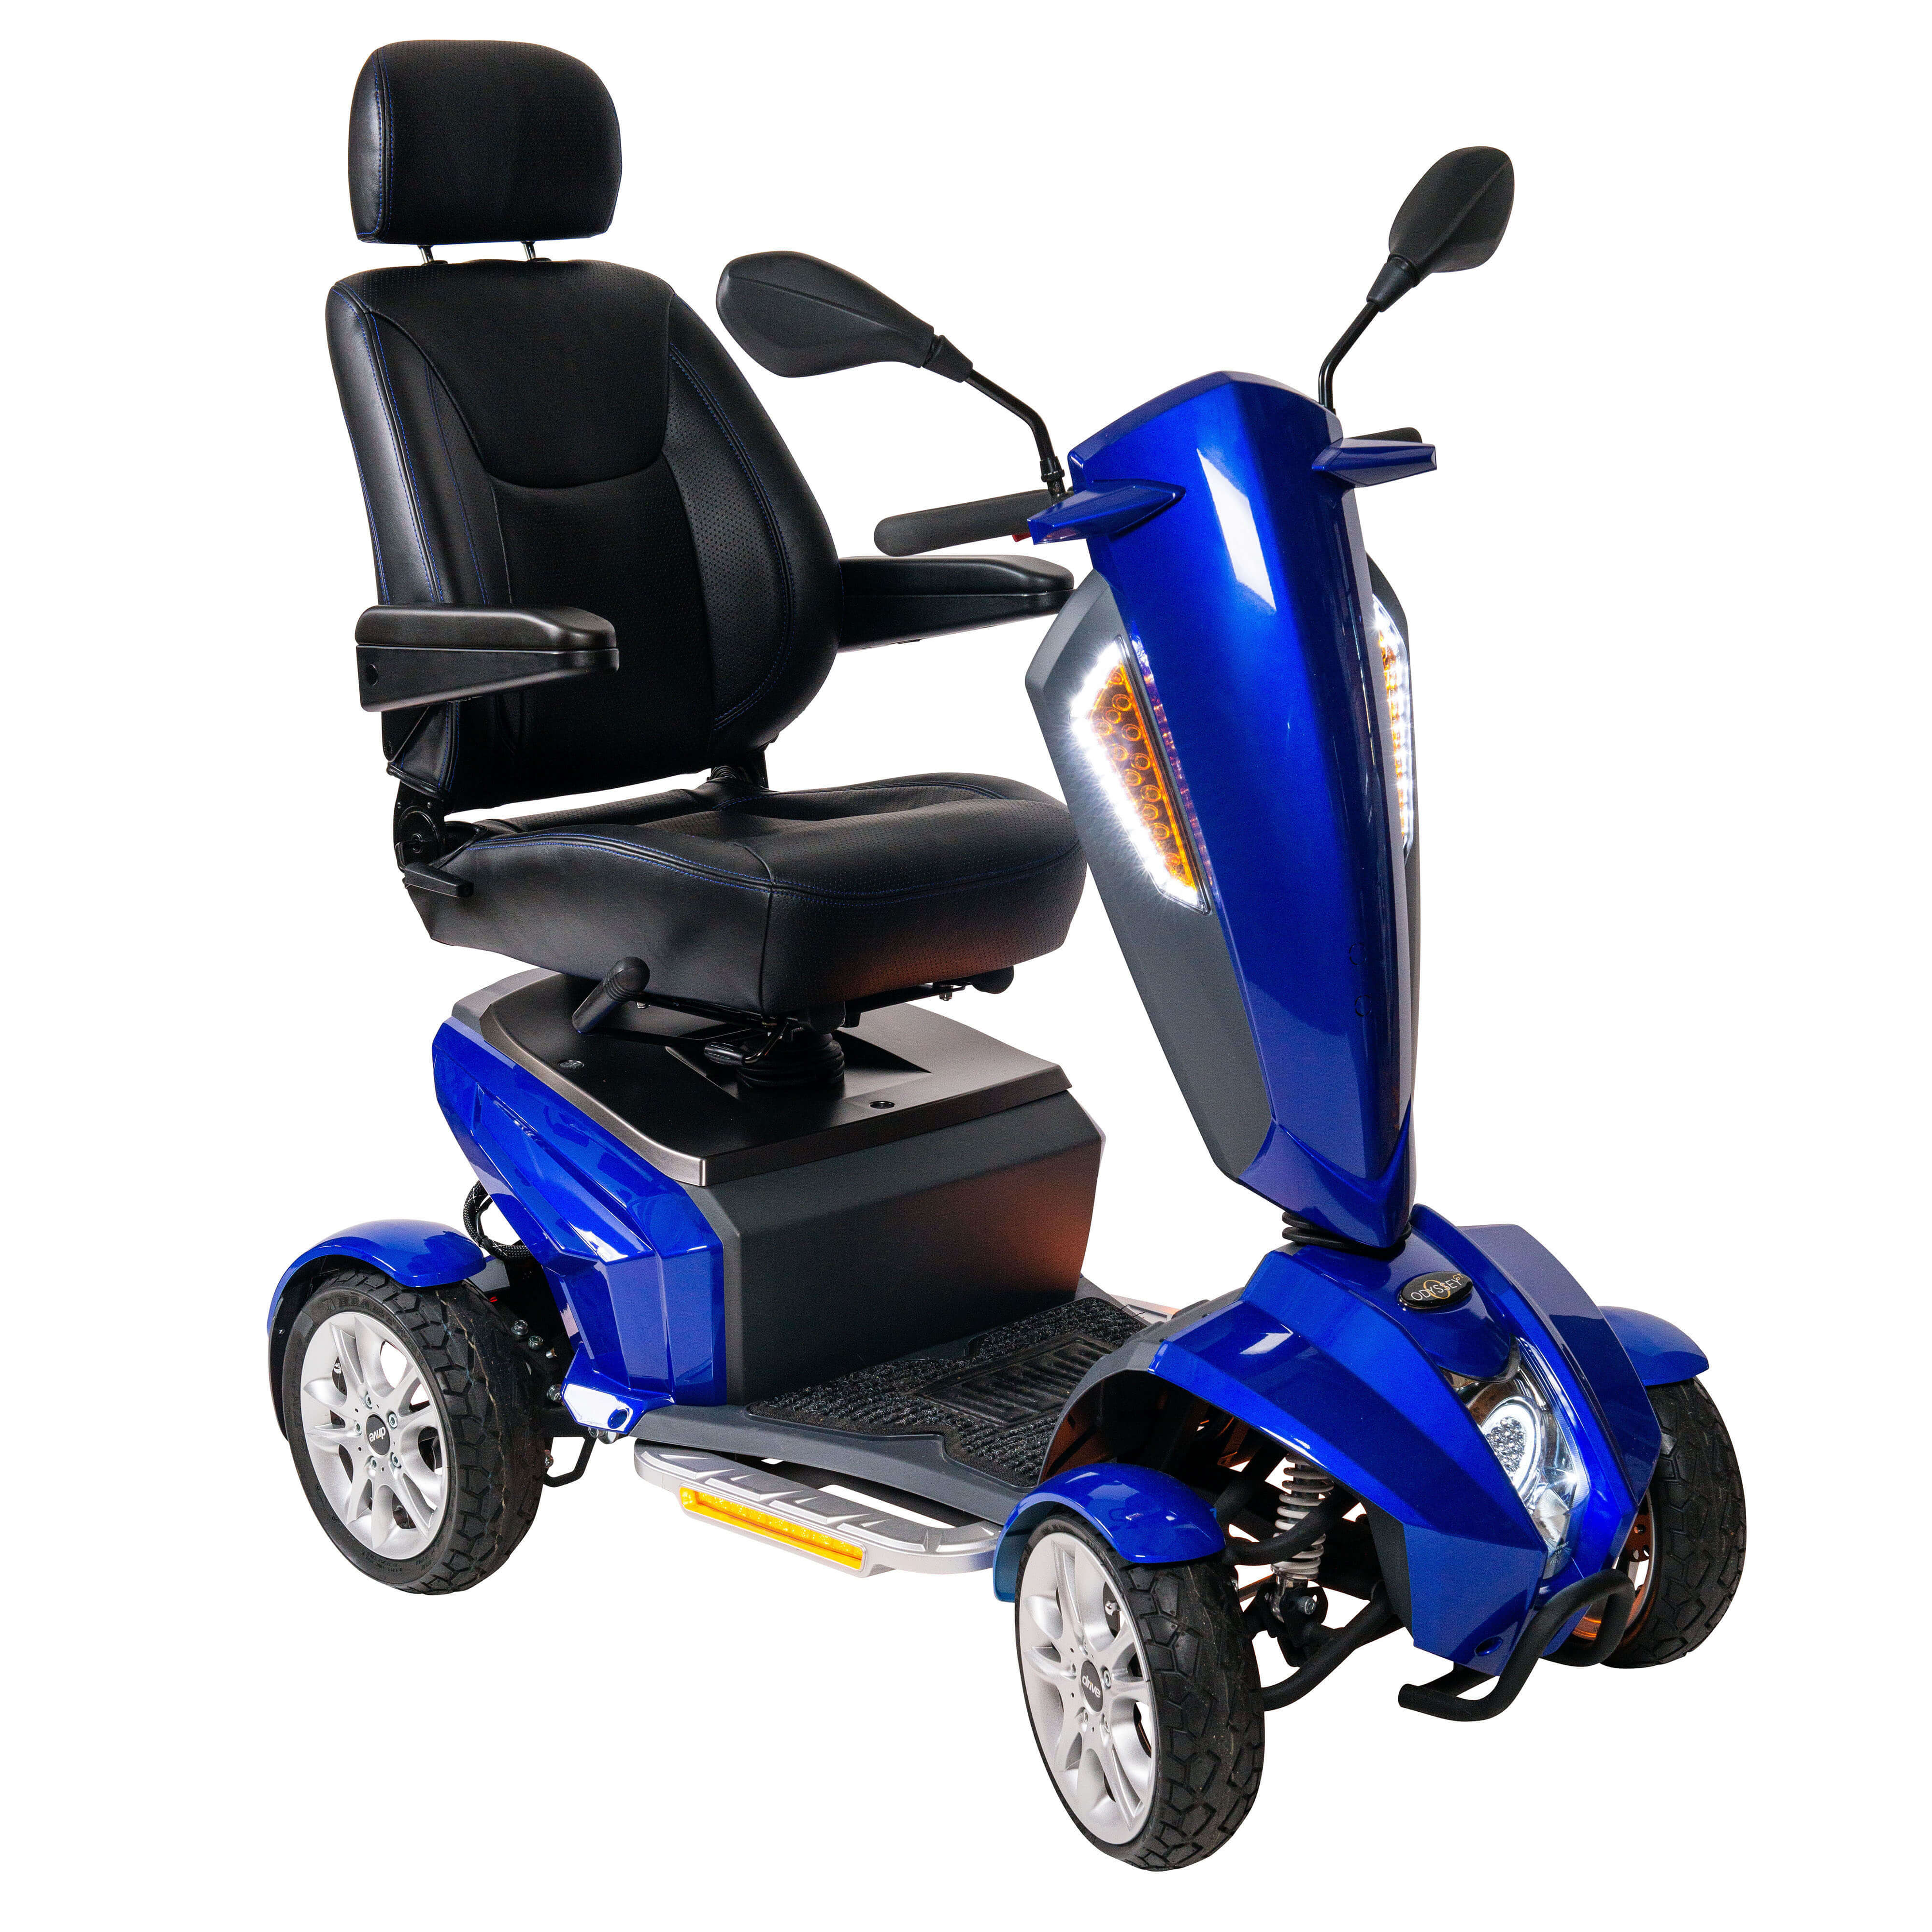 power chair car carrier slipcover dining chairs odyssey gt executive mobility scooter 18 quot captain 39s